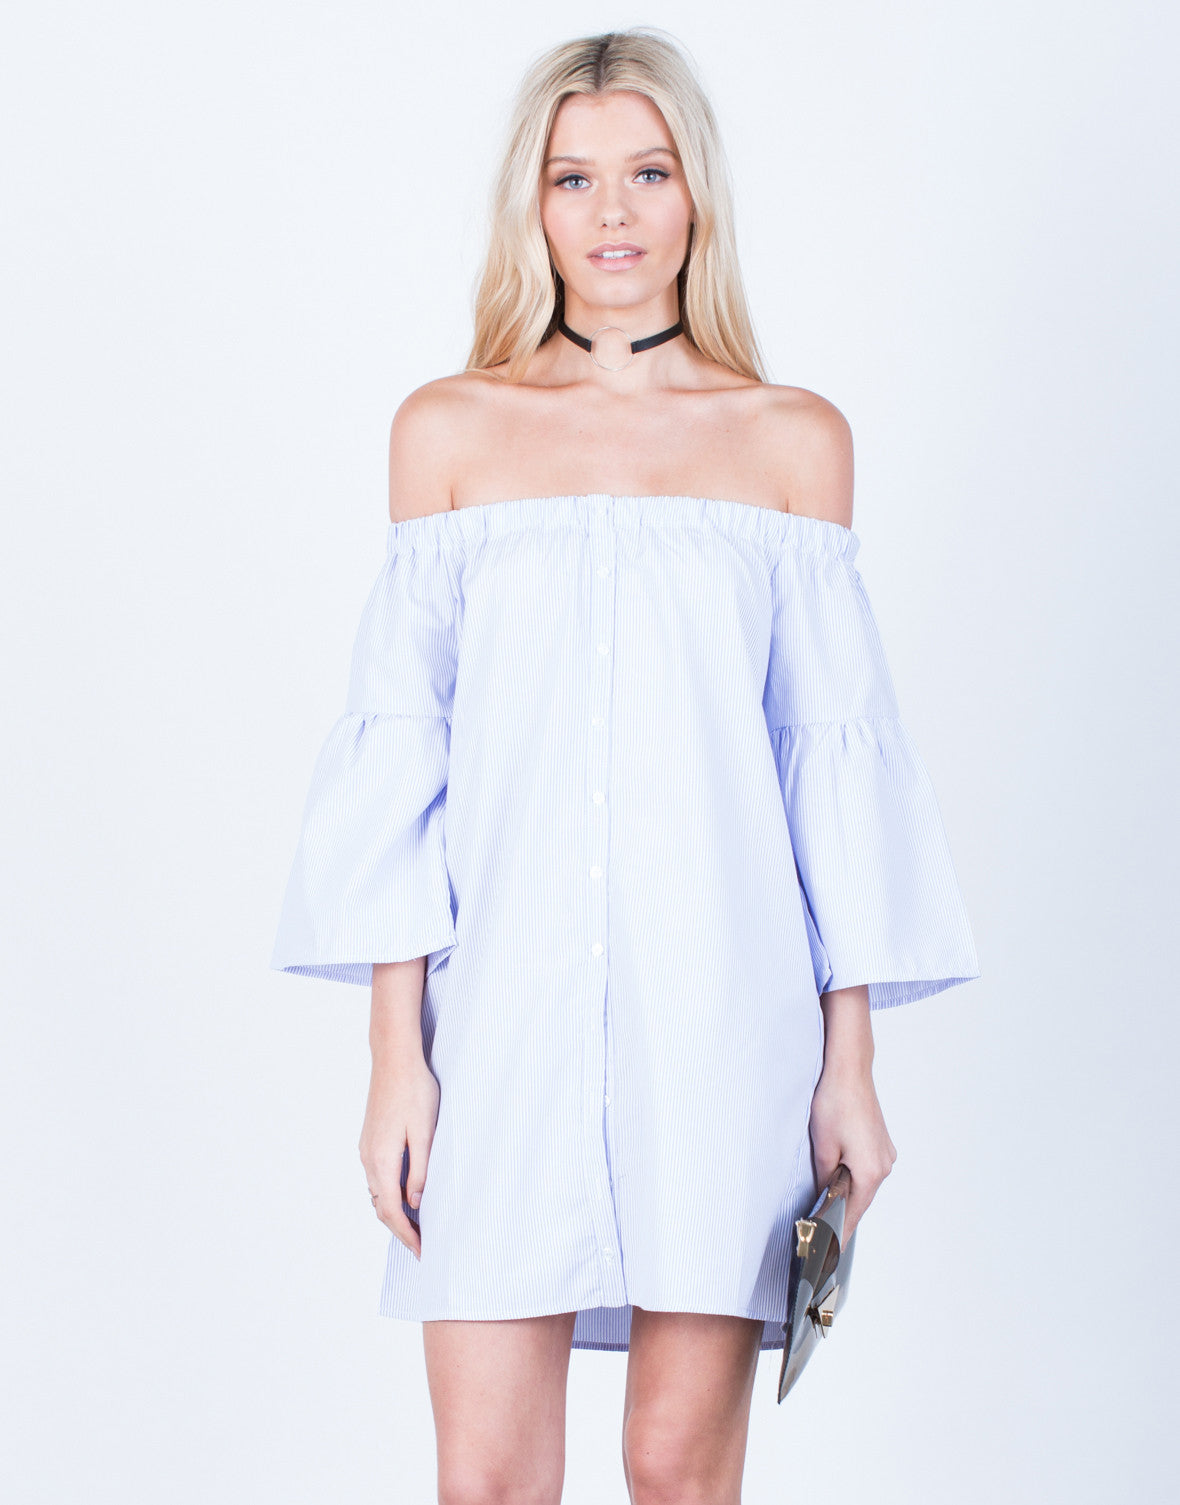 ae1857be8dbc Bell Sleeve Striped Dress - Off the Shoulder Dress - Striped Day ...